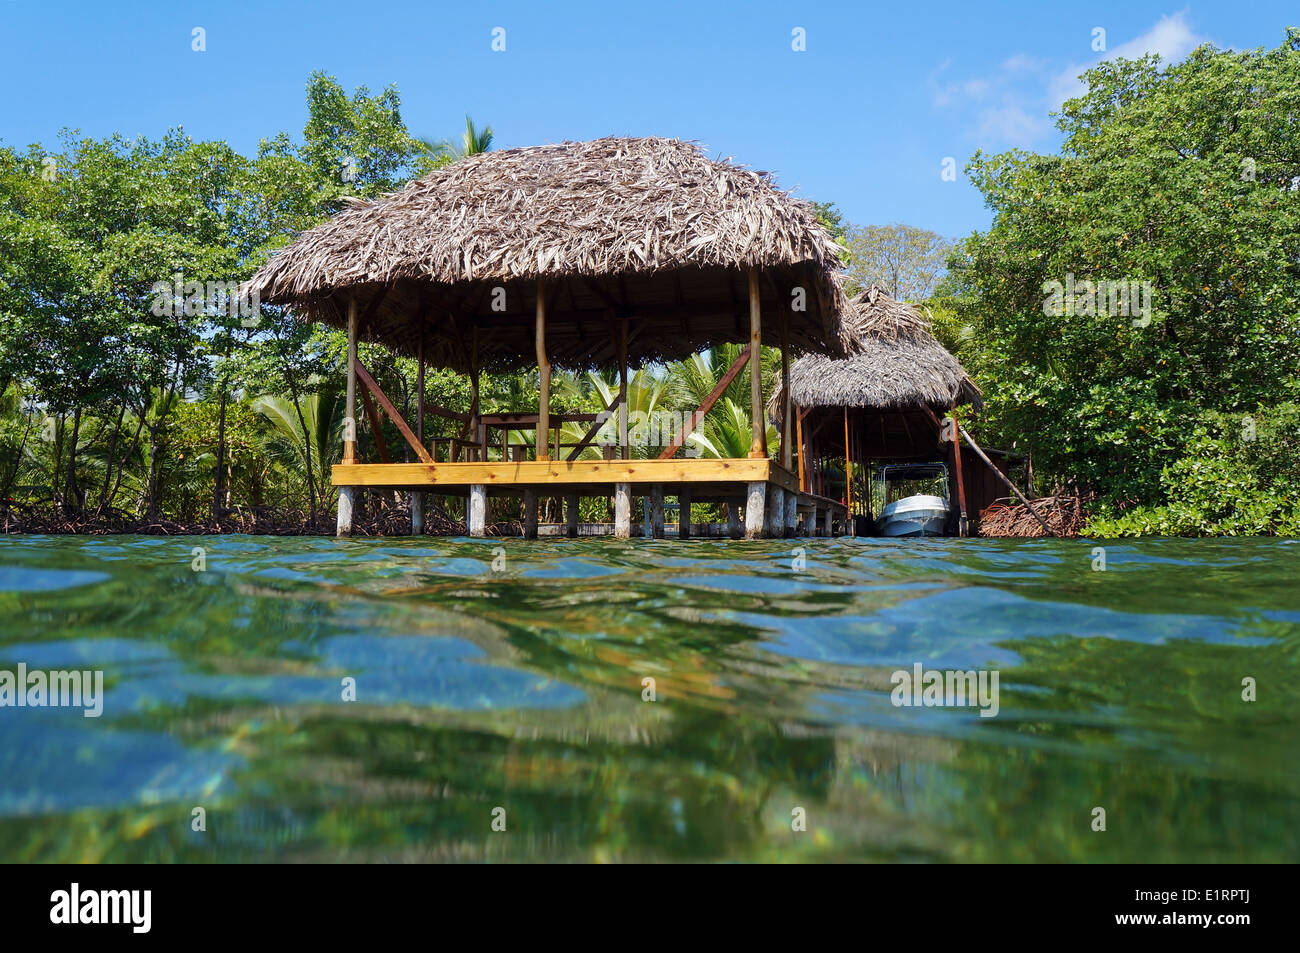 Tropical hut with thatch roof overwater and a boathouse with vegetation in background, viewed from water surface, Caribbean sea - Stock Image